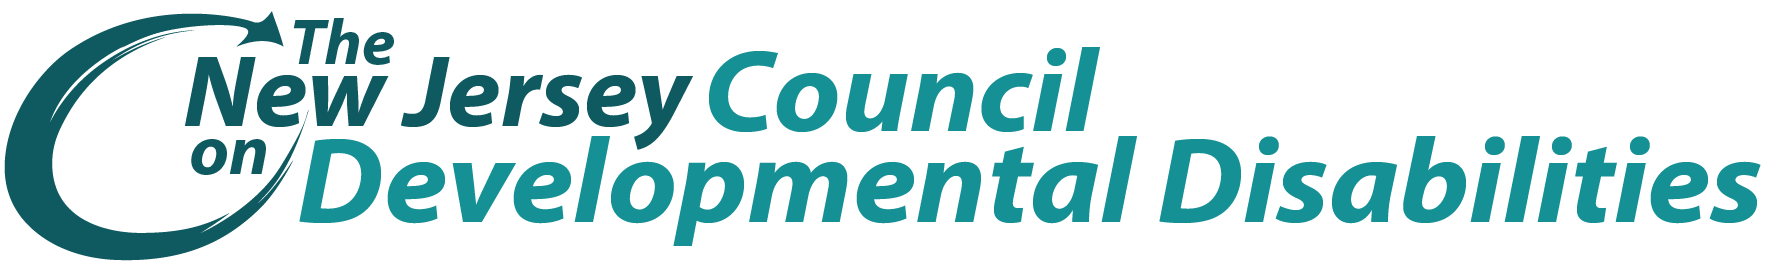 Logo New Jersey Council on Developmental Disabilities